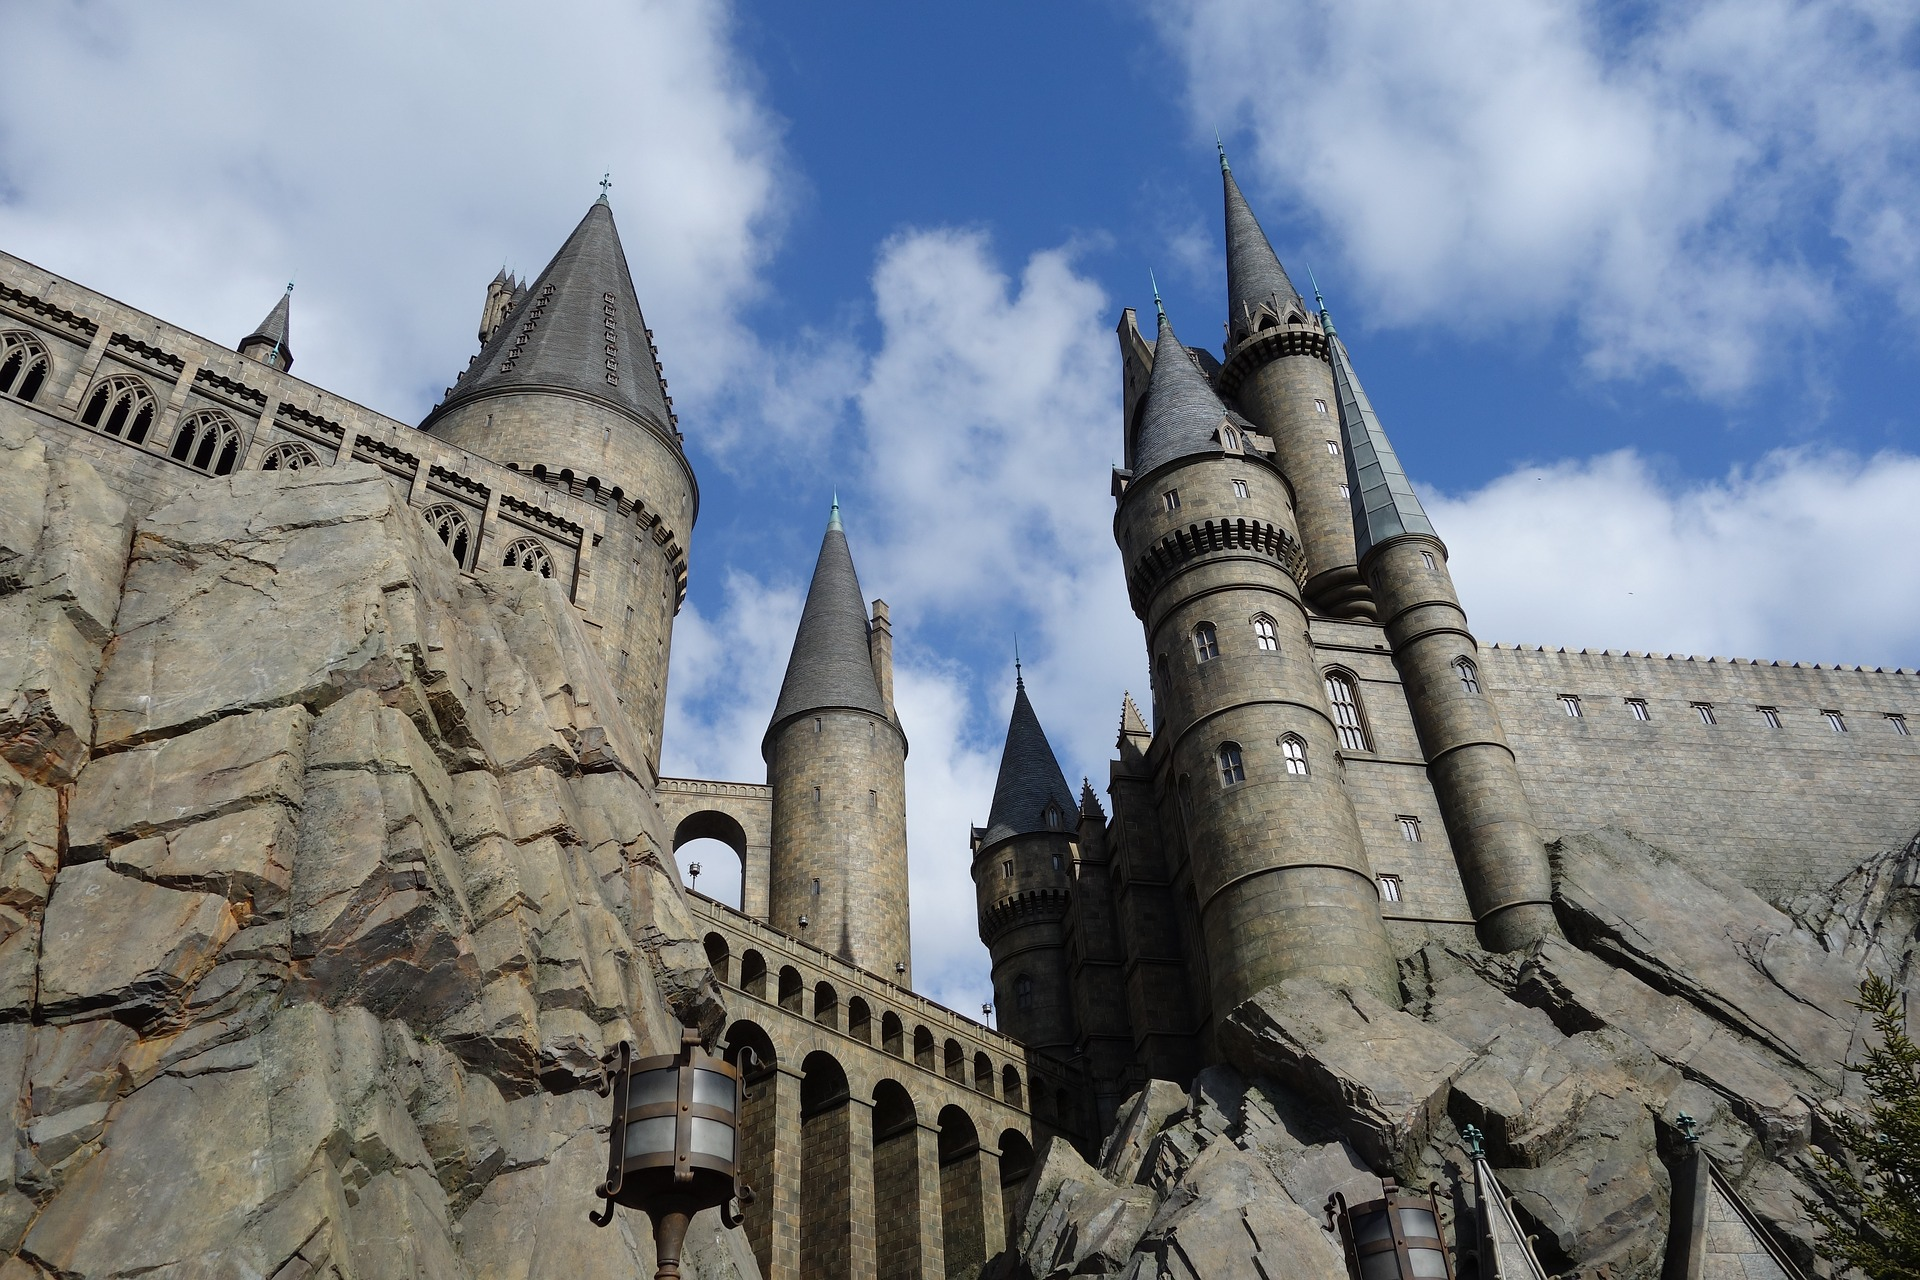 Harry Potter world universal studios Osaka Japan